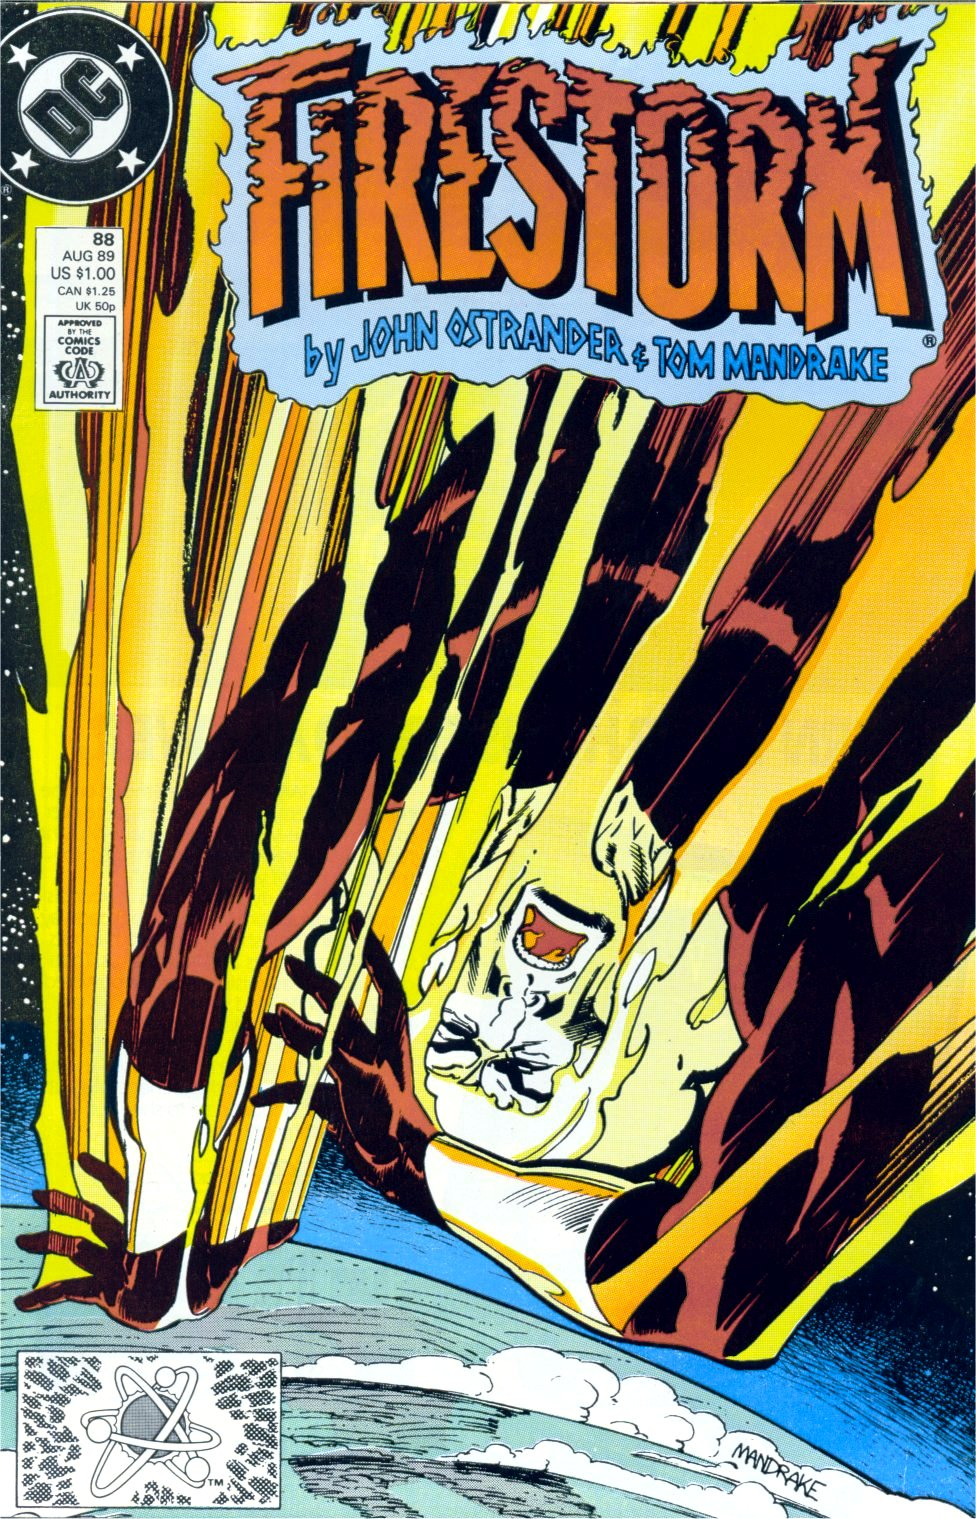 Firestorm, the Nuclear Man 88 Page 1